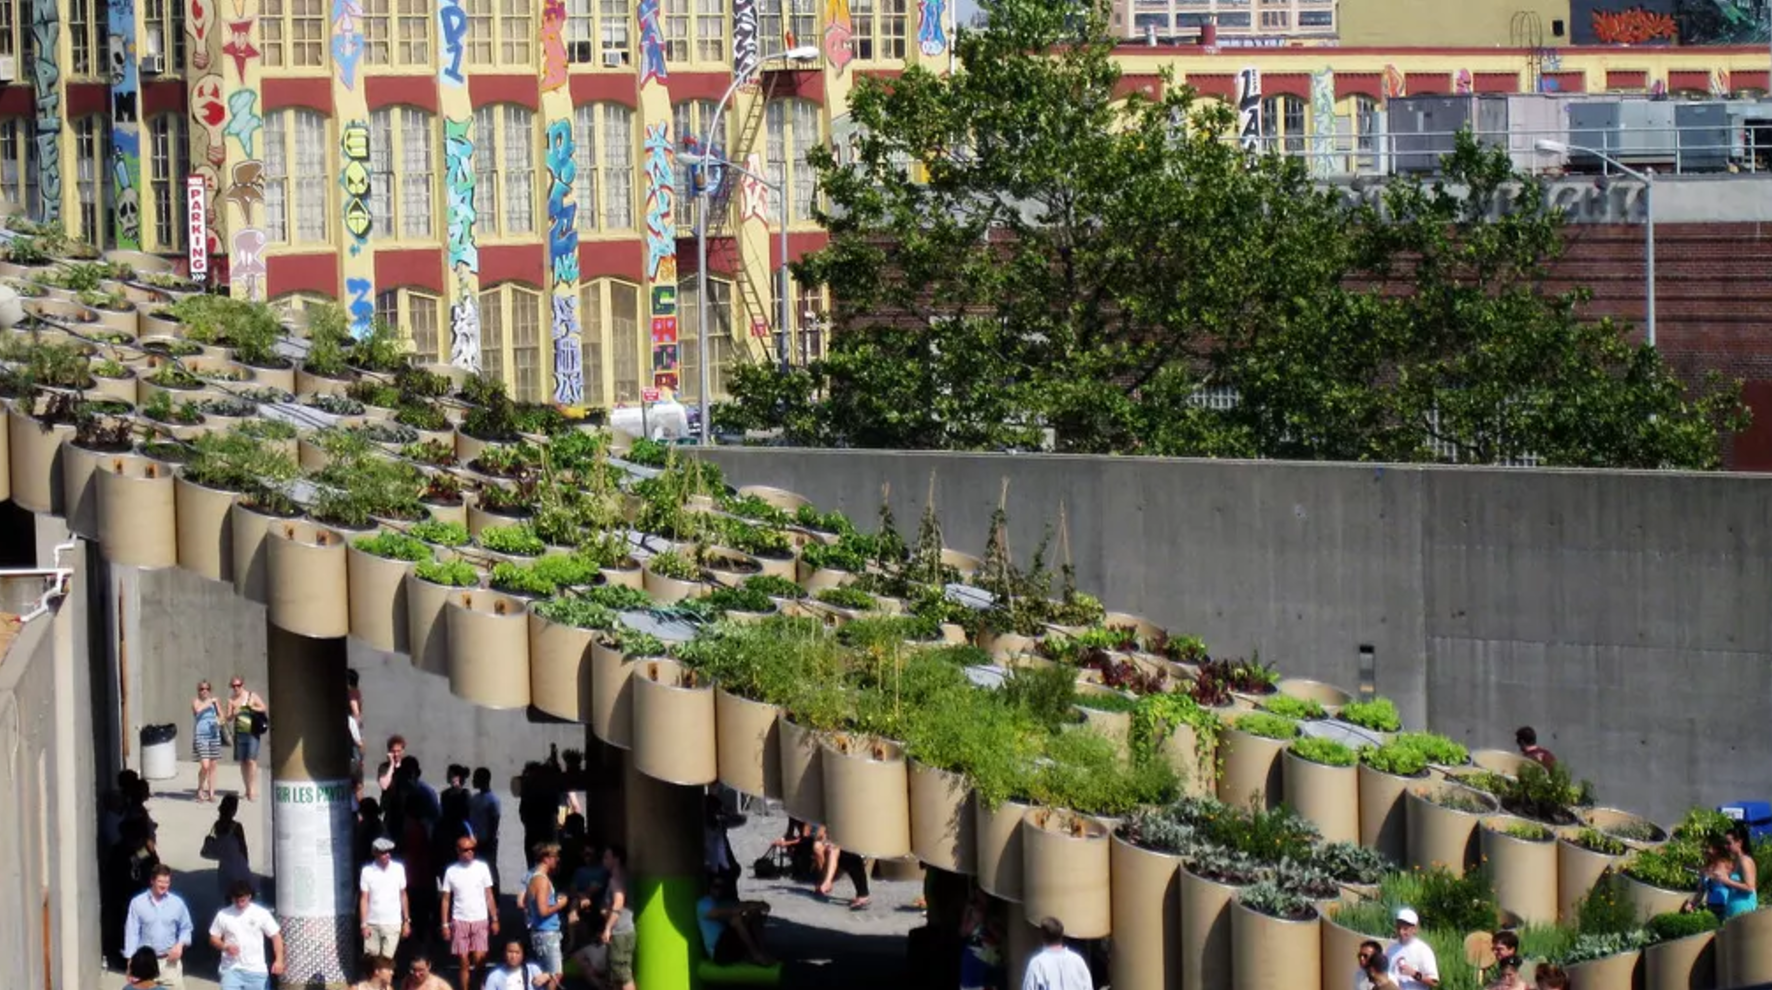 Public Farm One by Work Architecture Company is an urban farming project displayed in New York. Picture: XmasCarol/Flickr